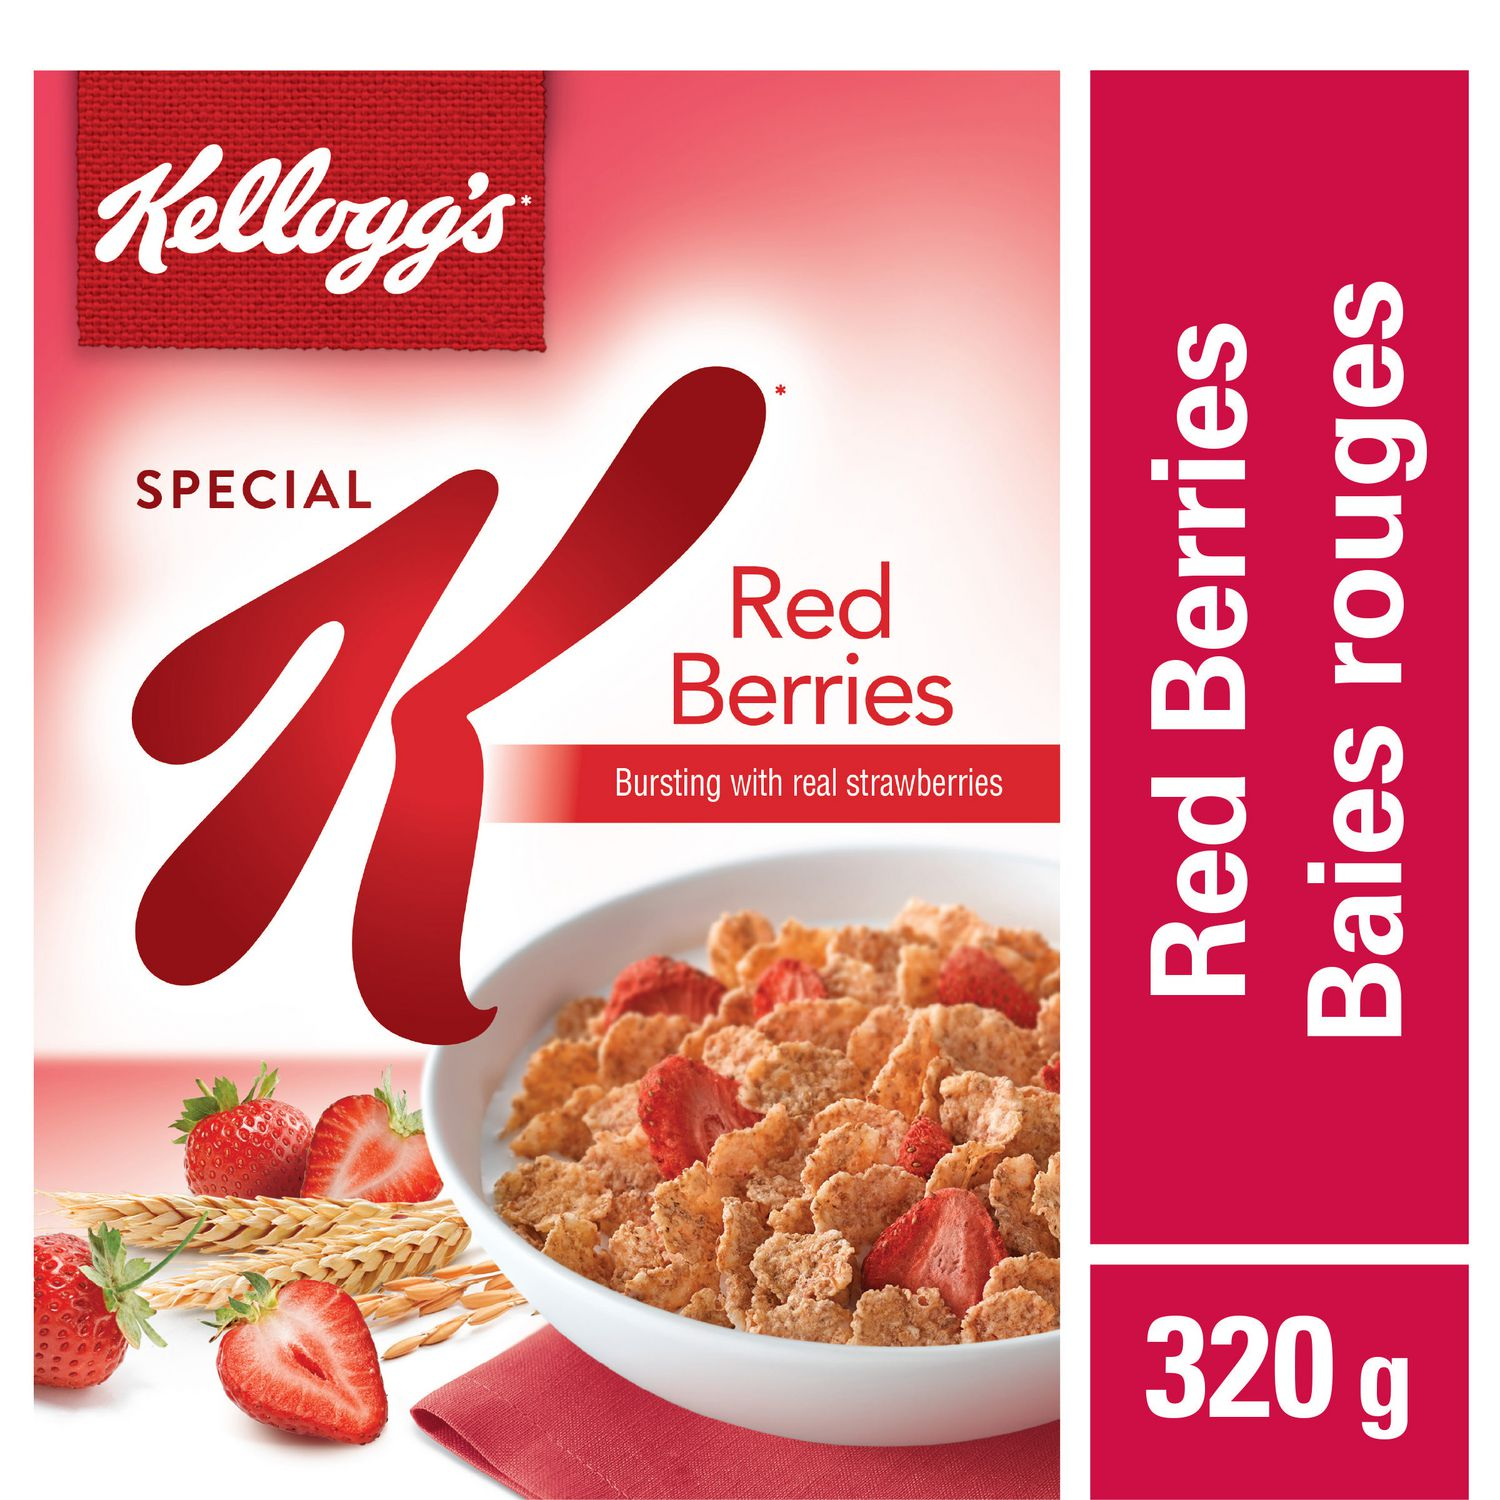 Kellogg's Special K Red Berries Cereal, 320g,